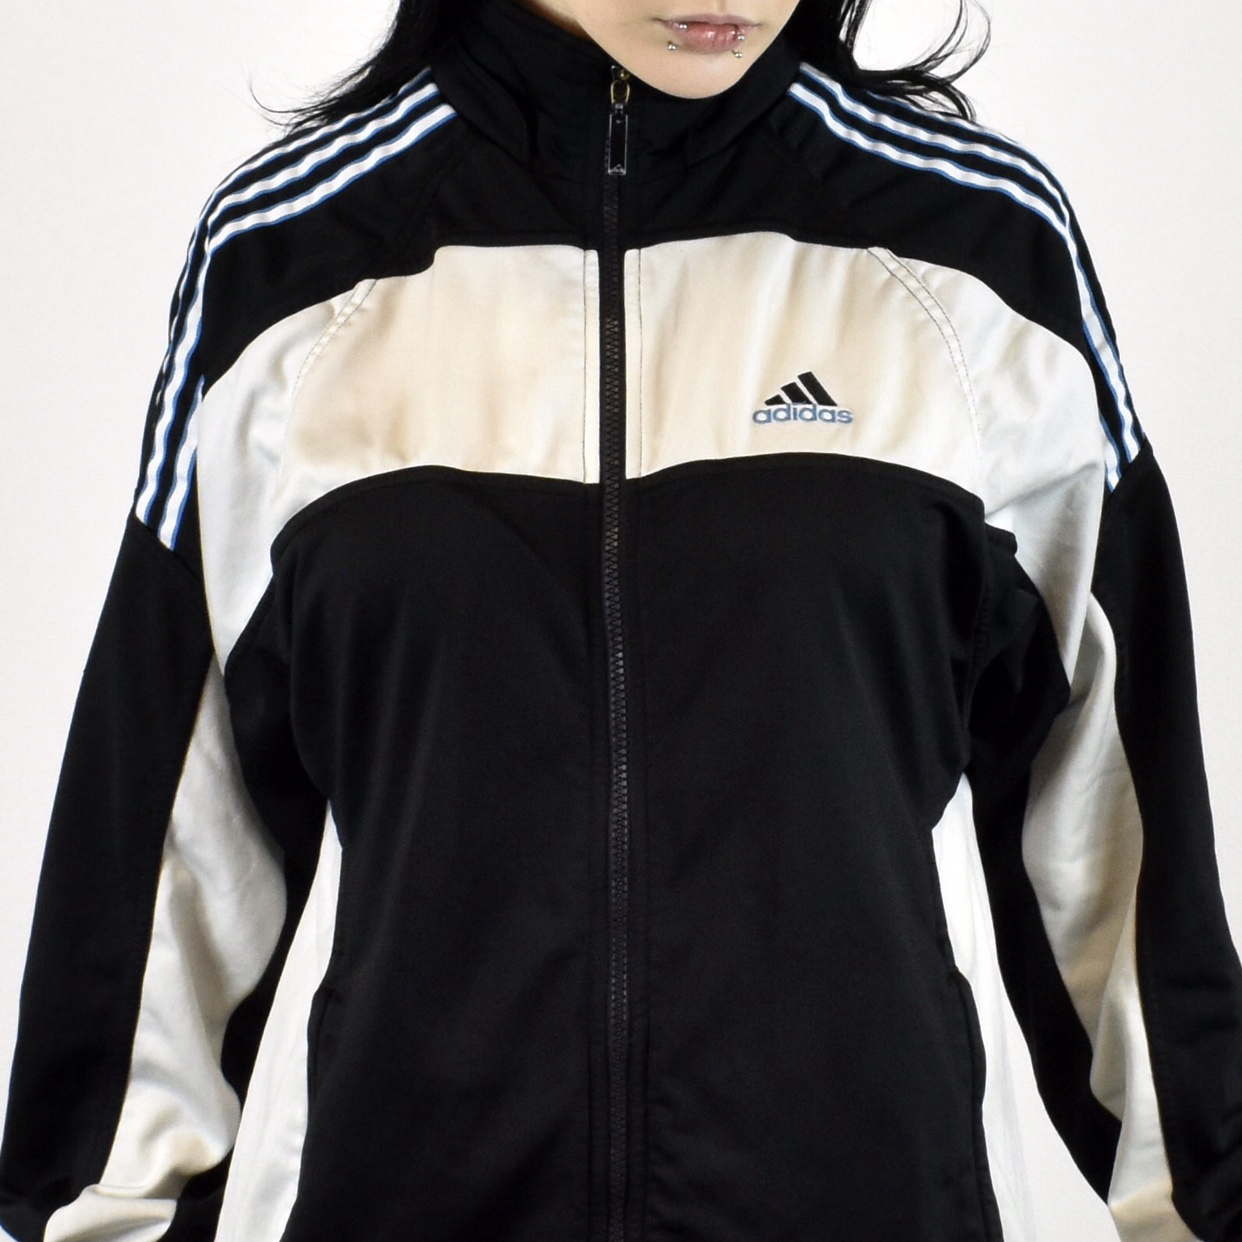 03ceaa7fa4380 Unisex Vintage Adidas tracksuit track jacket in black and white size M